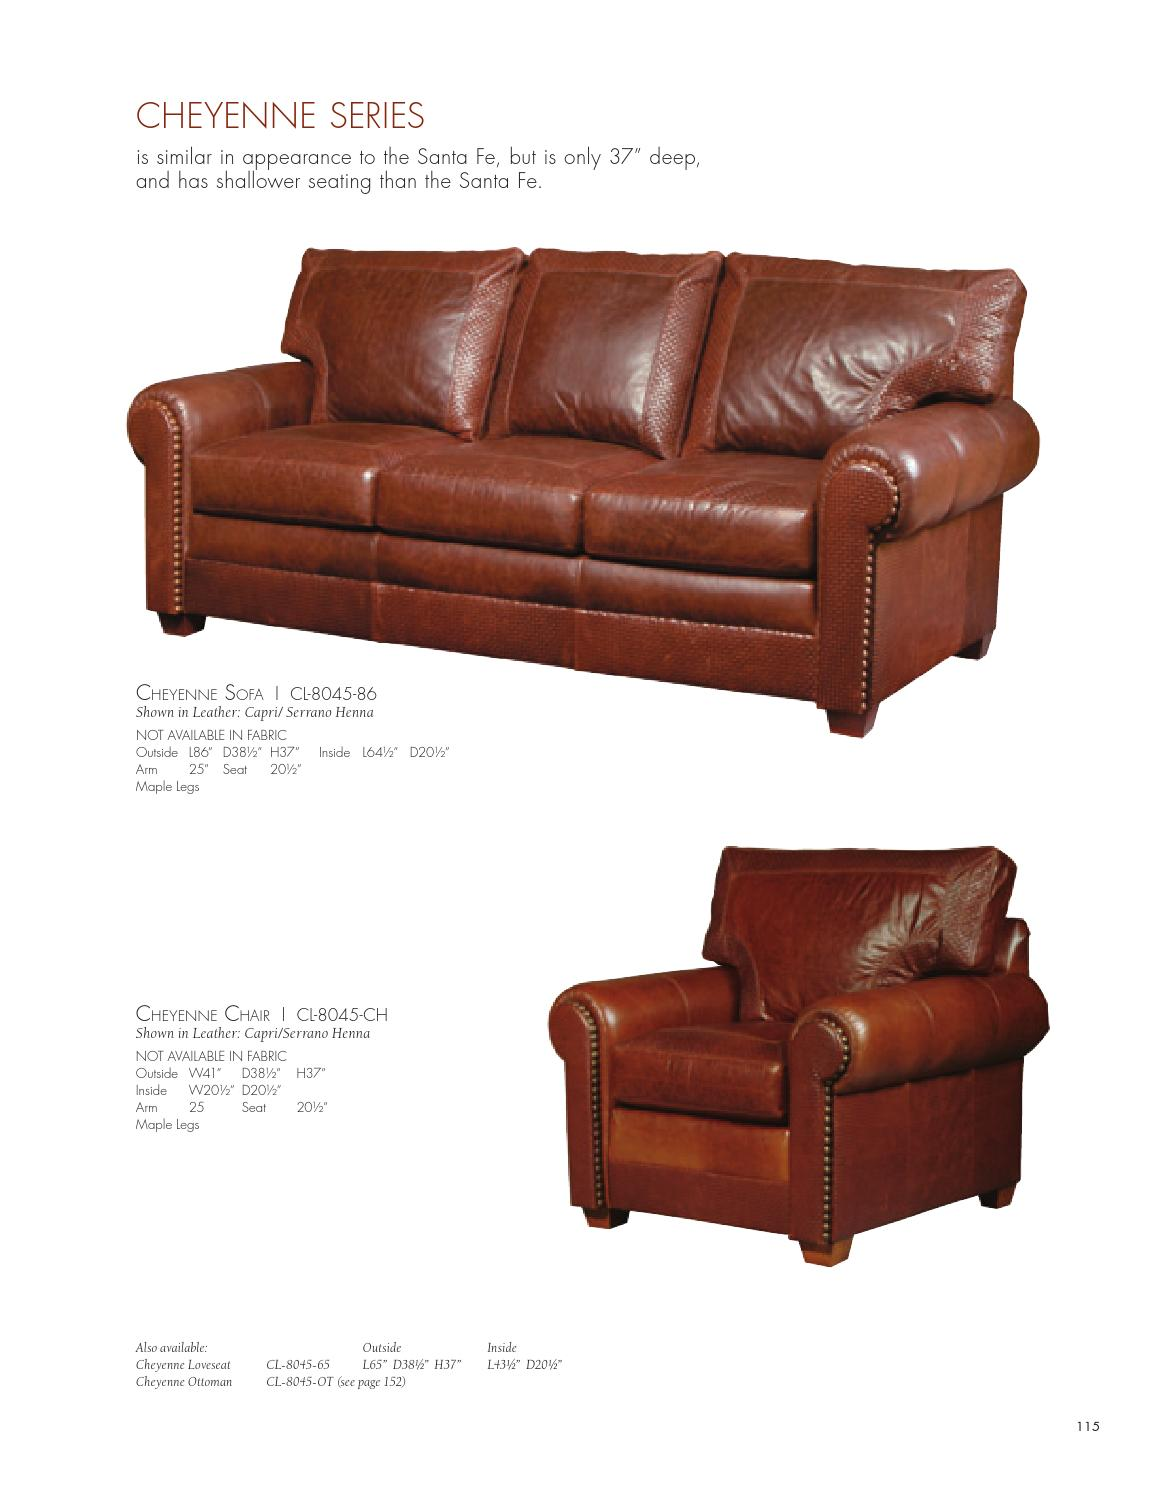 Stickley Fine Upholstery U0026 Leather Collection By Stickley   Issuu